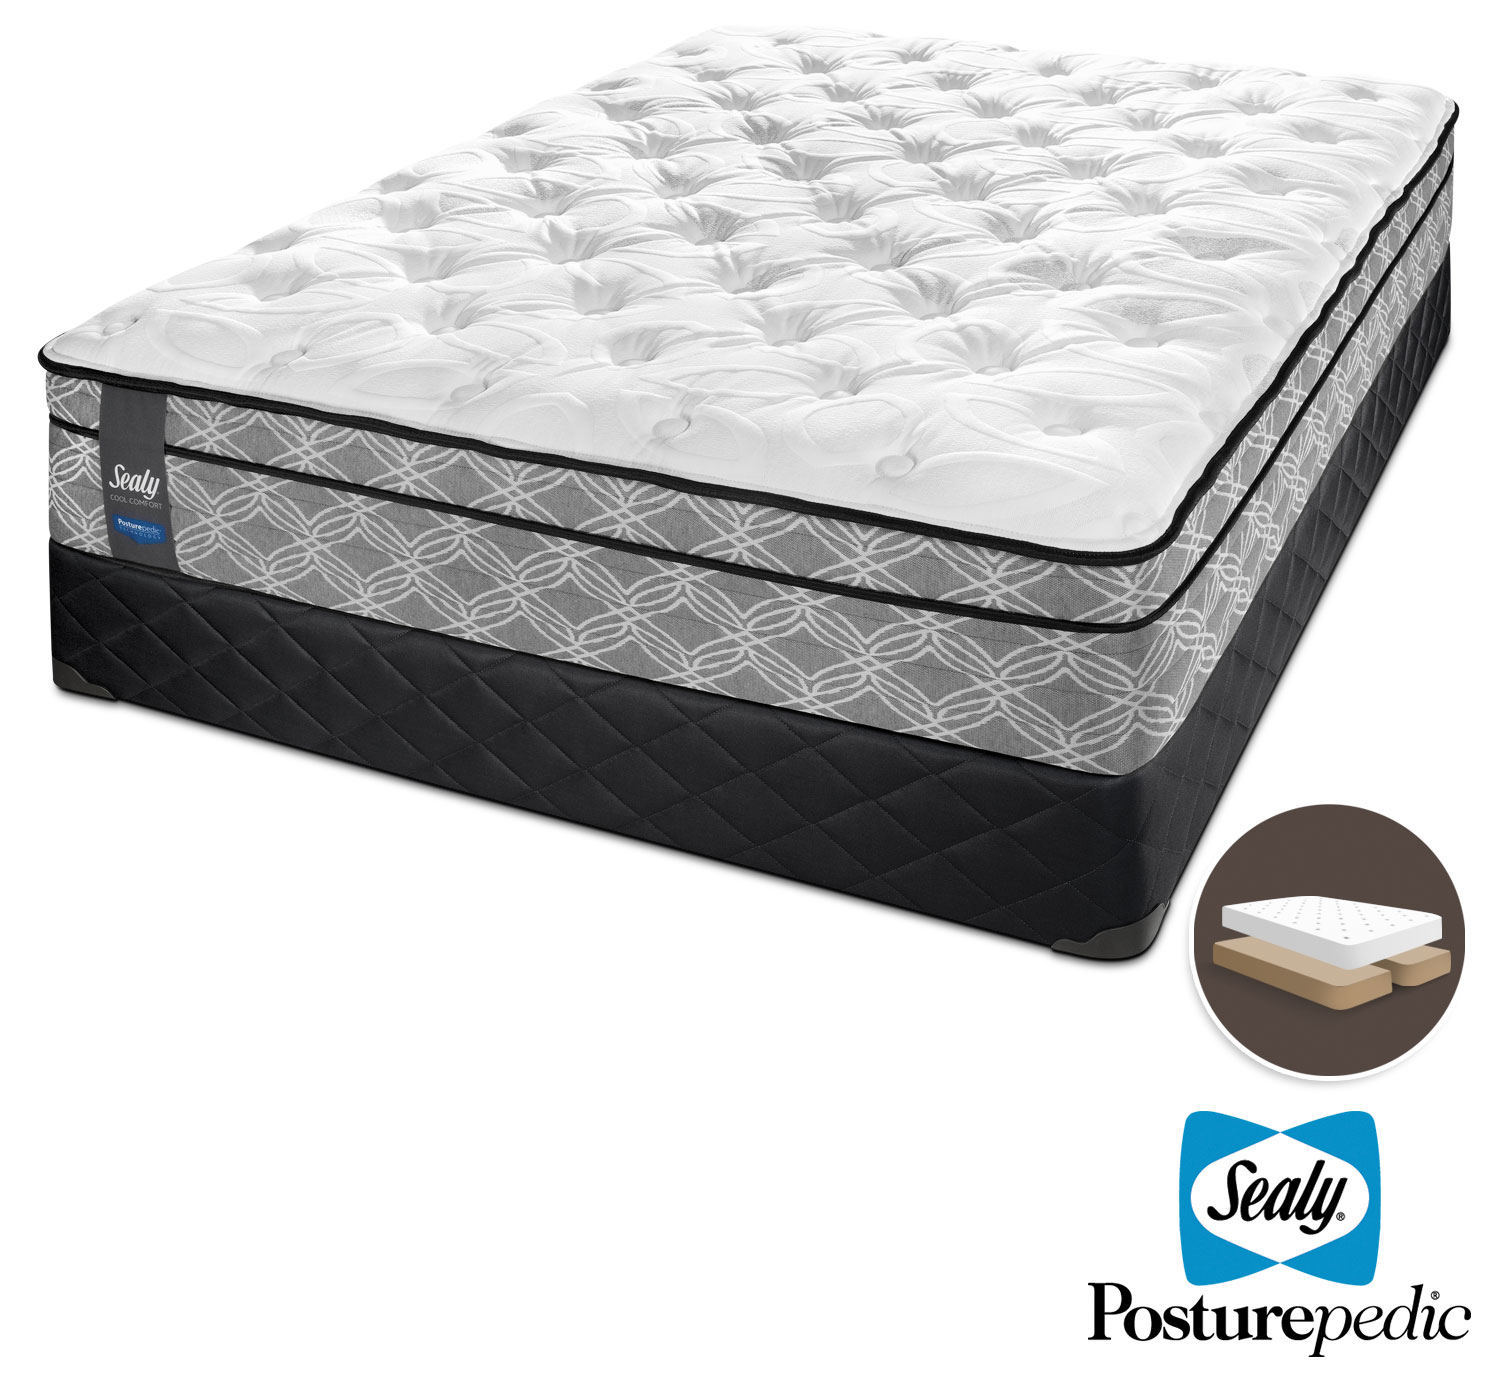 Sealy Moonshade Firm King Mattress and Split Boxspring Set